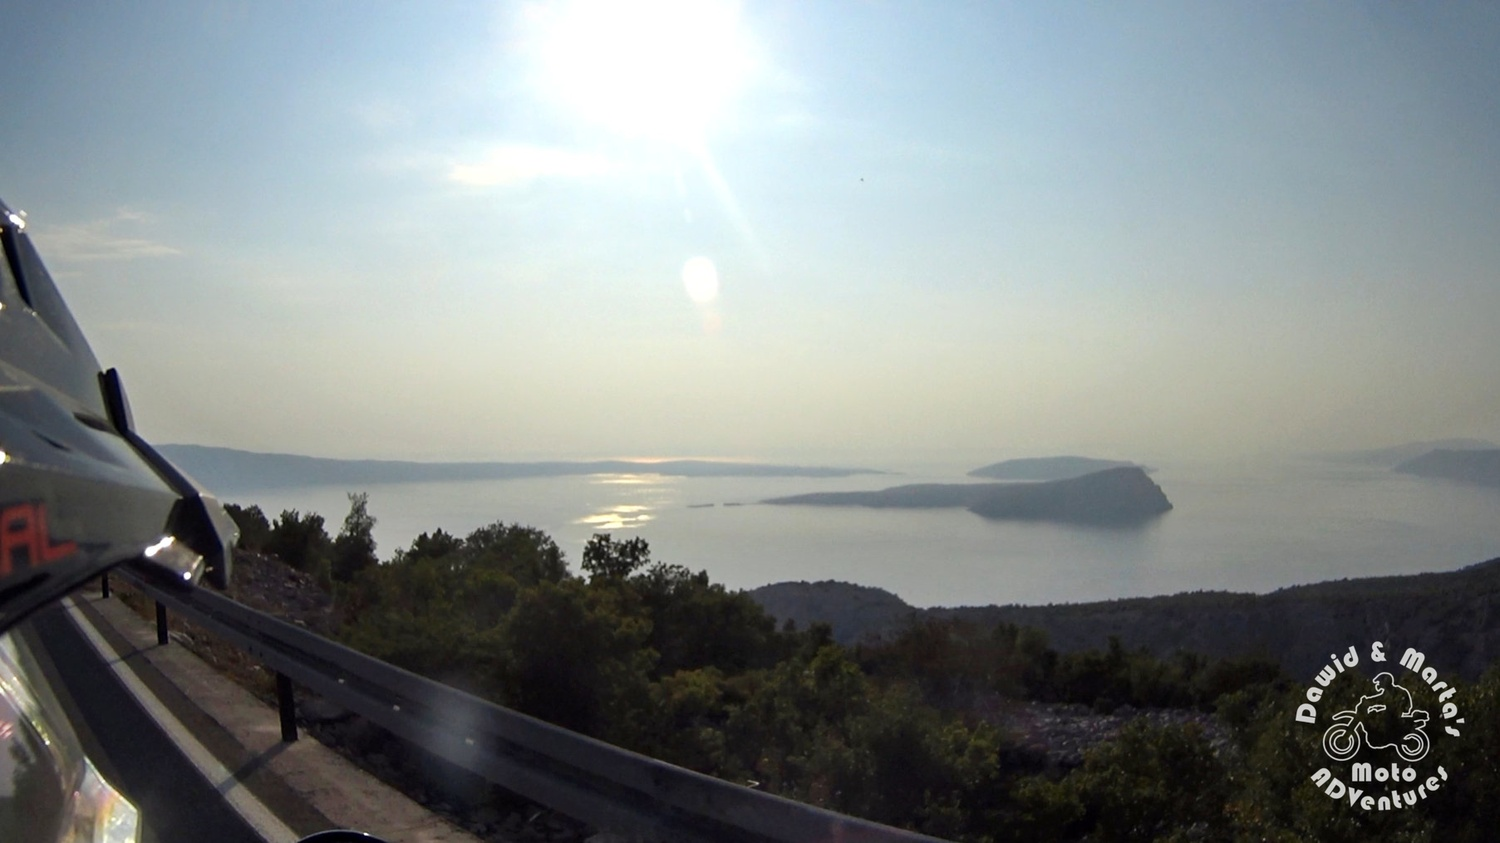 View from the Adriatic Highway on the Adriatic Sea